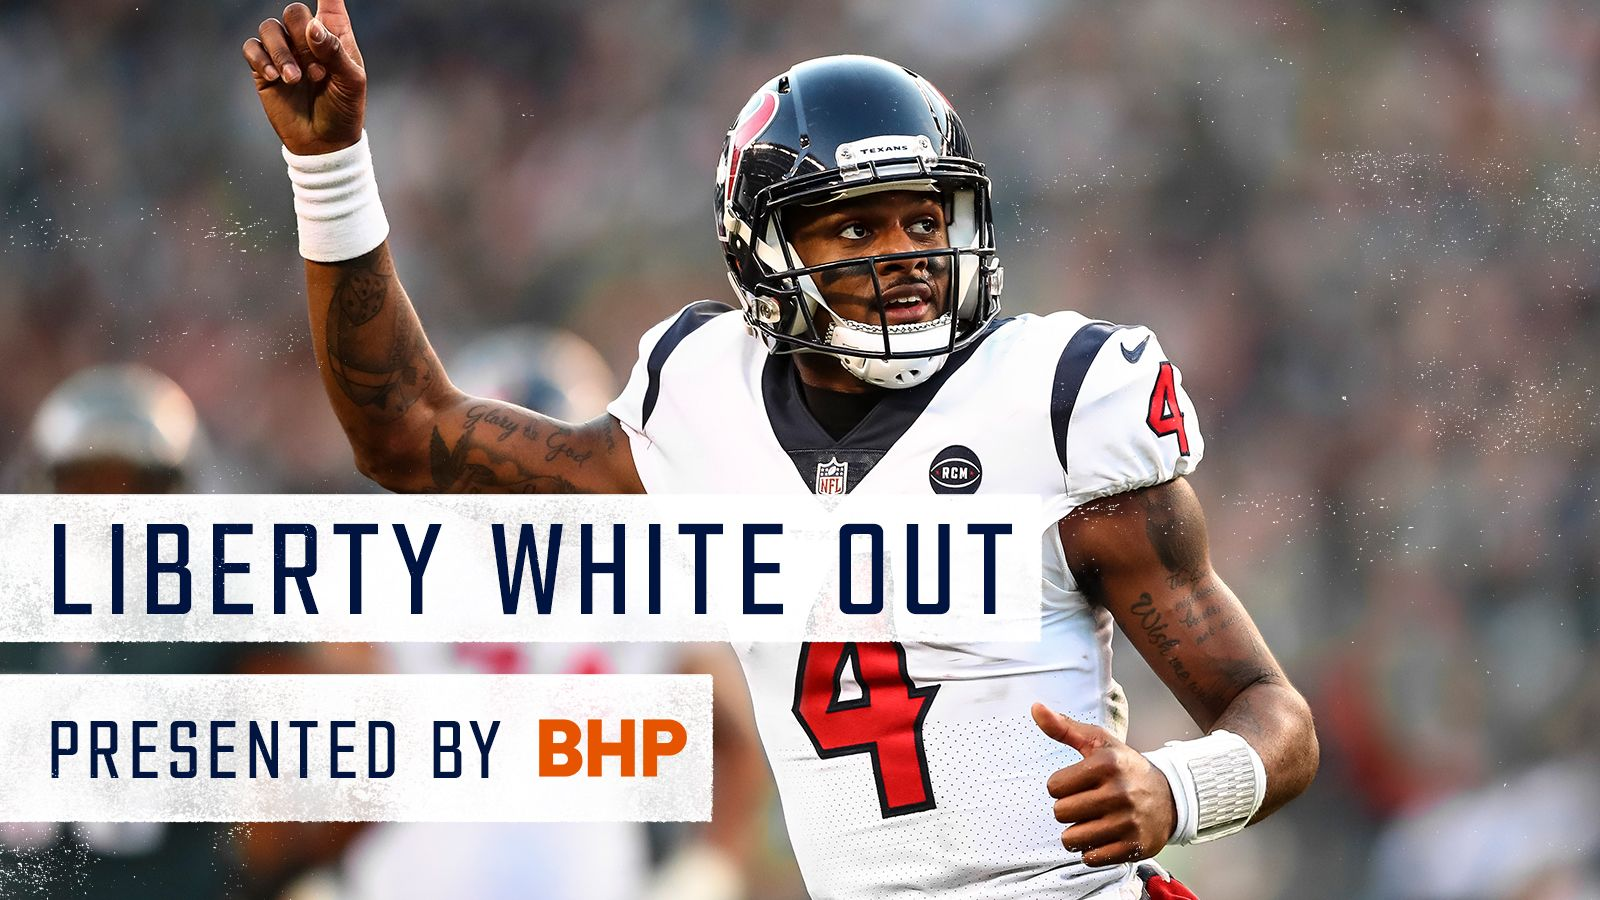 Liberty White Out Game. Presented by BHP